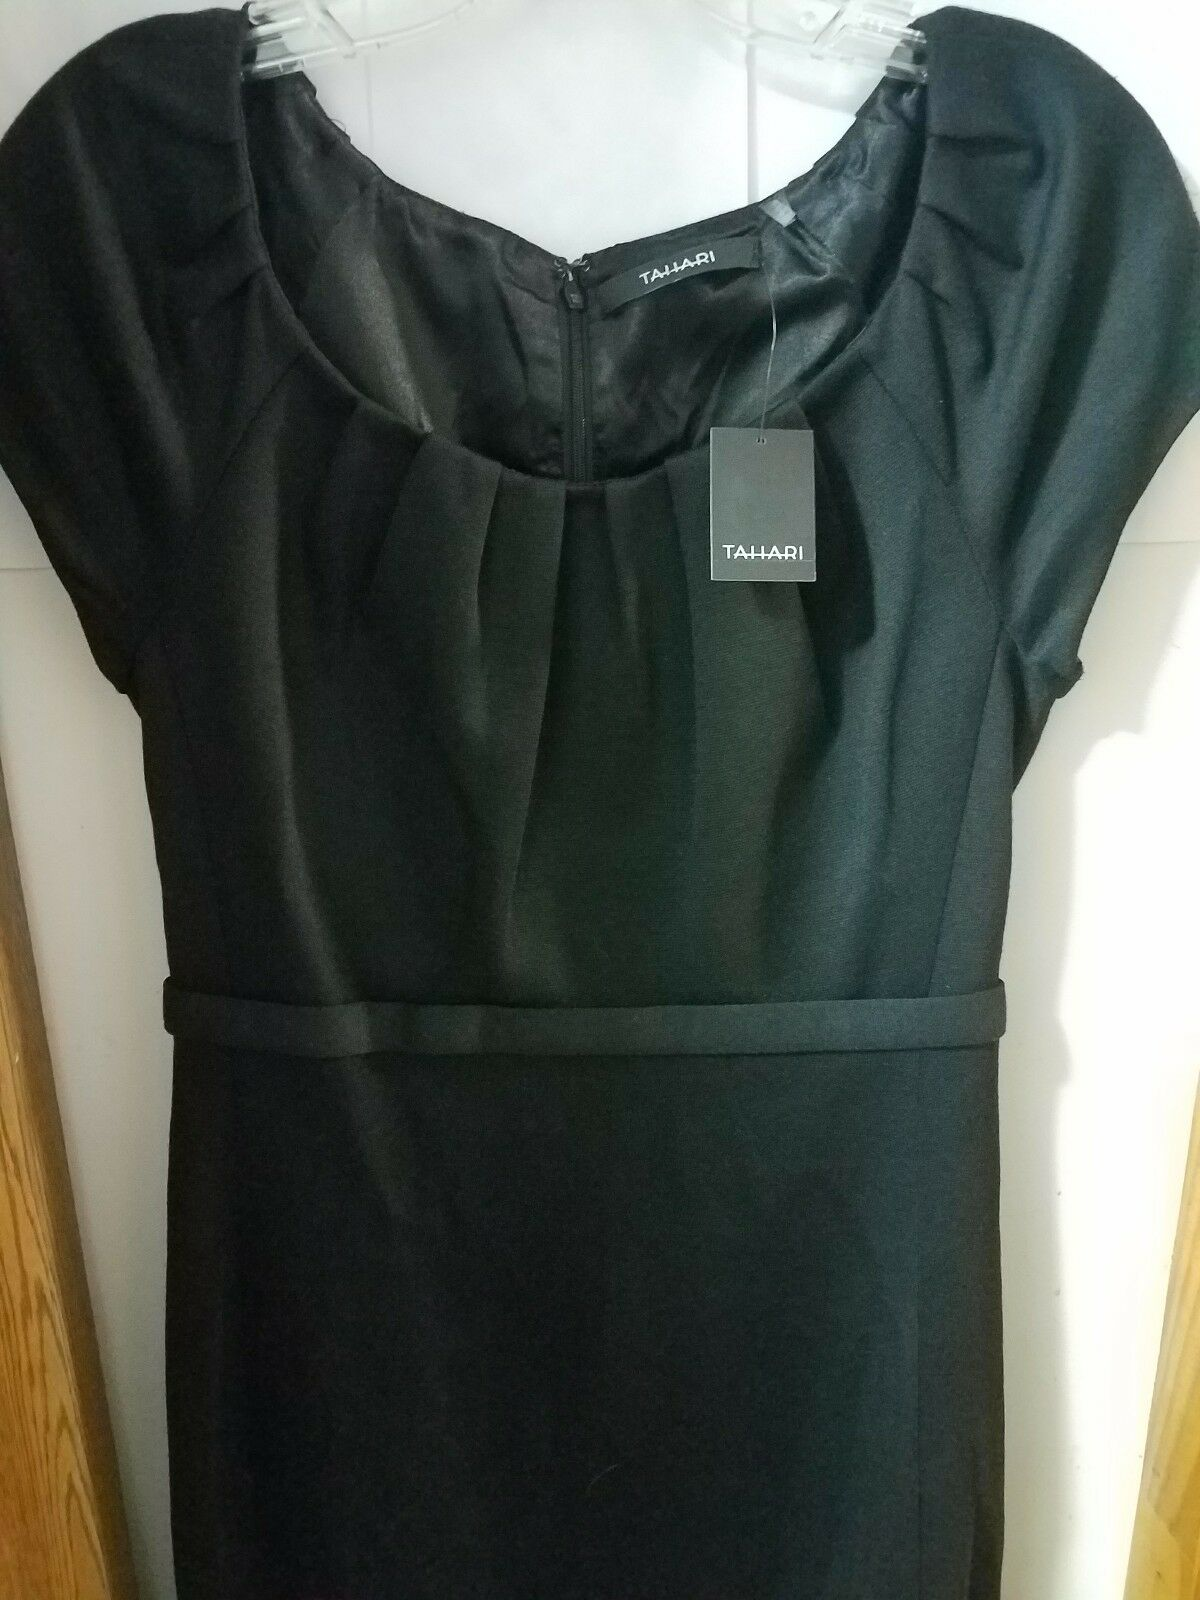 NWT Elie Tahari schwarz Ember Sheath Dress Sz 4 - New with Tags